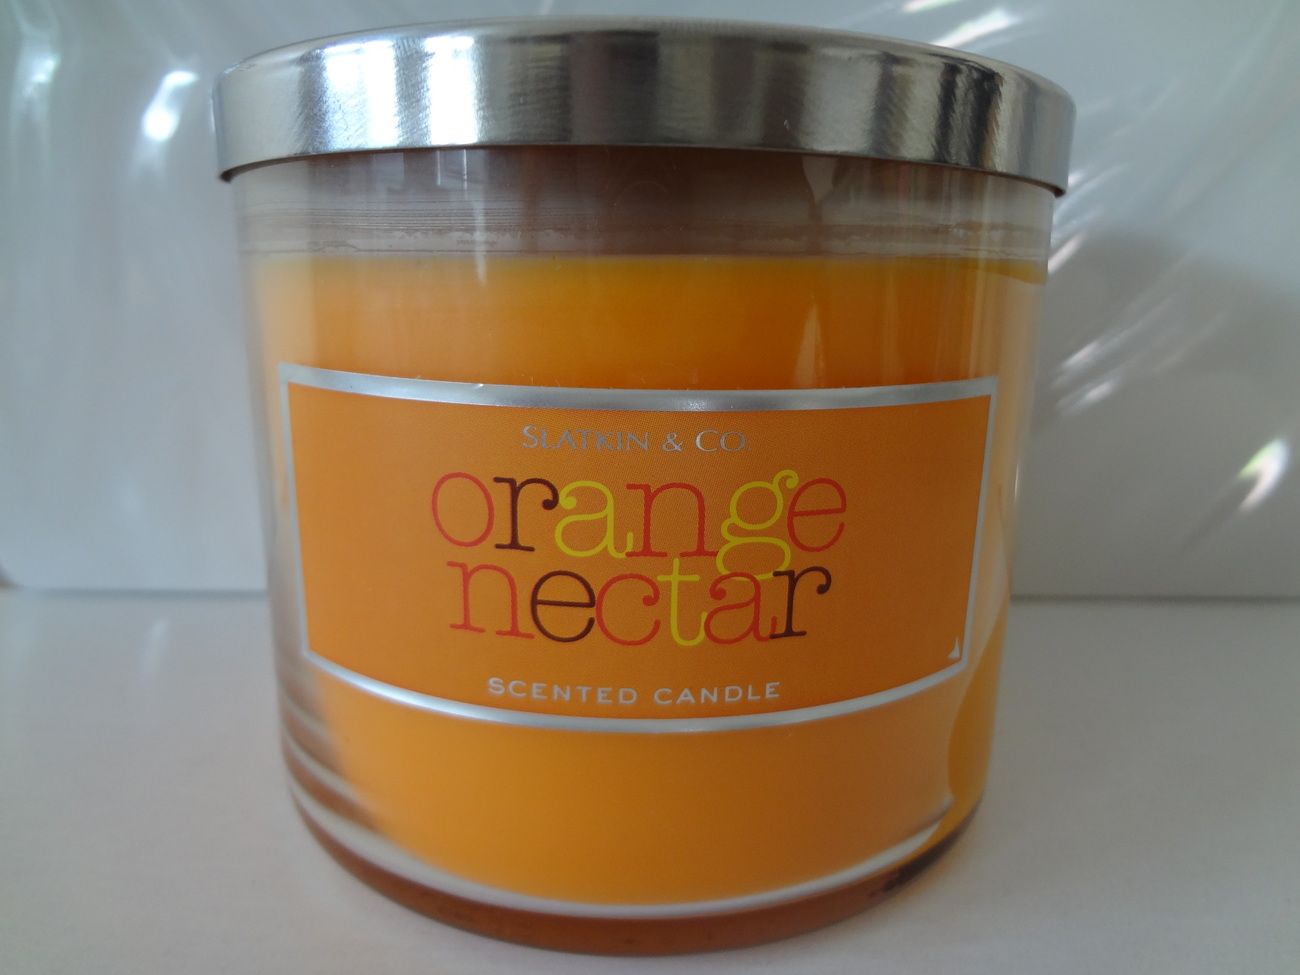 Bath & Body Works Slatkin & Co. ORANGE NECTAR Scented Candle 14.5 oz / 411 g